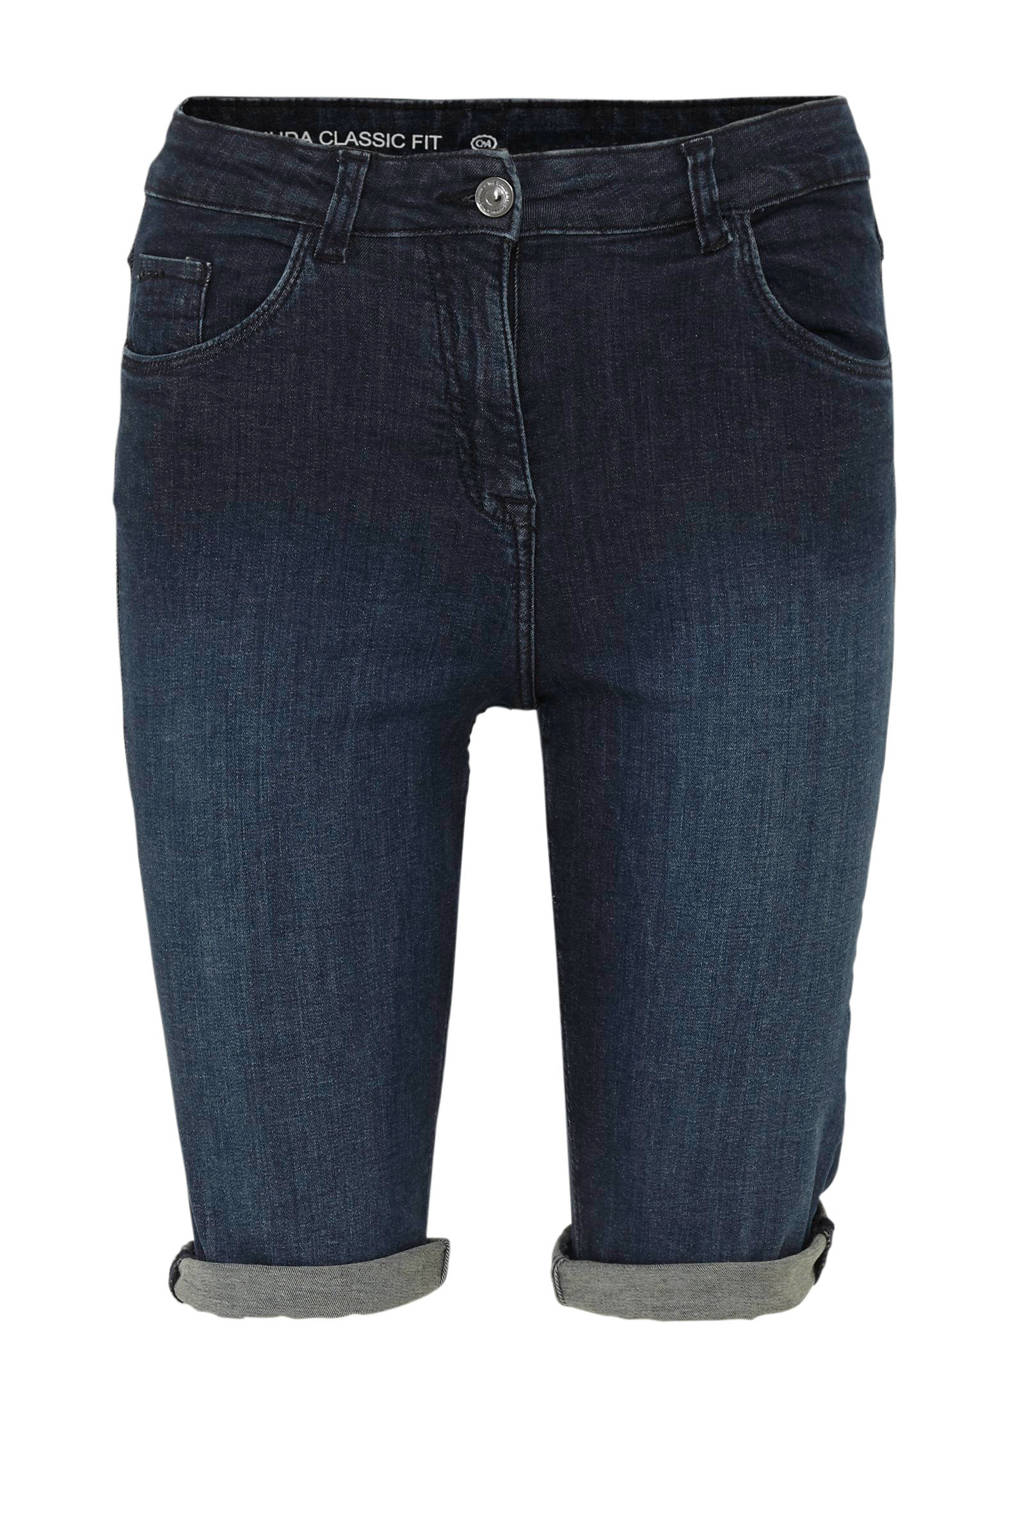 C&A The Denim slim fit jeans short, Donkerblauw